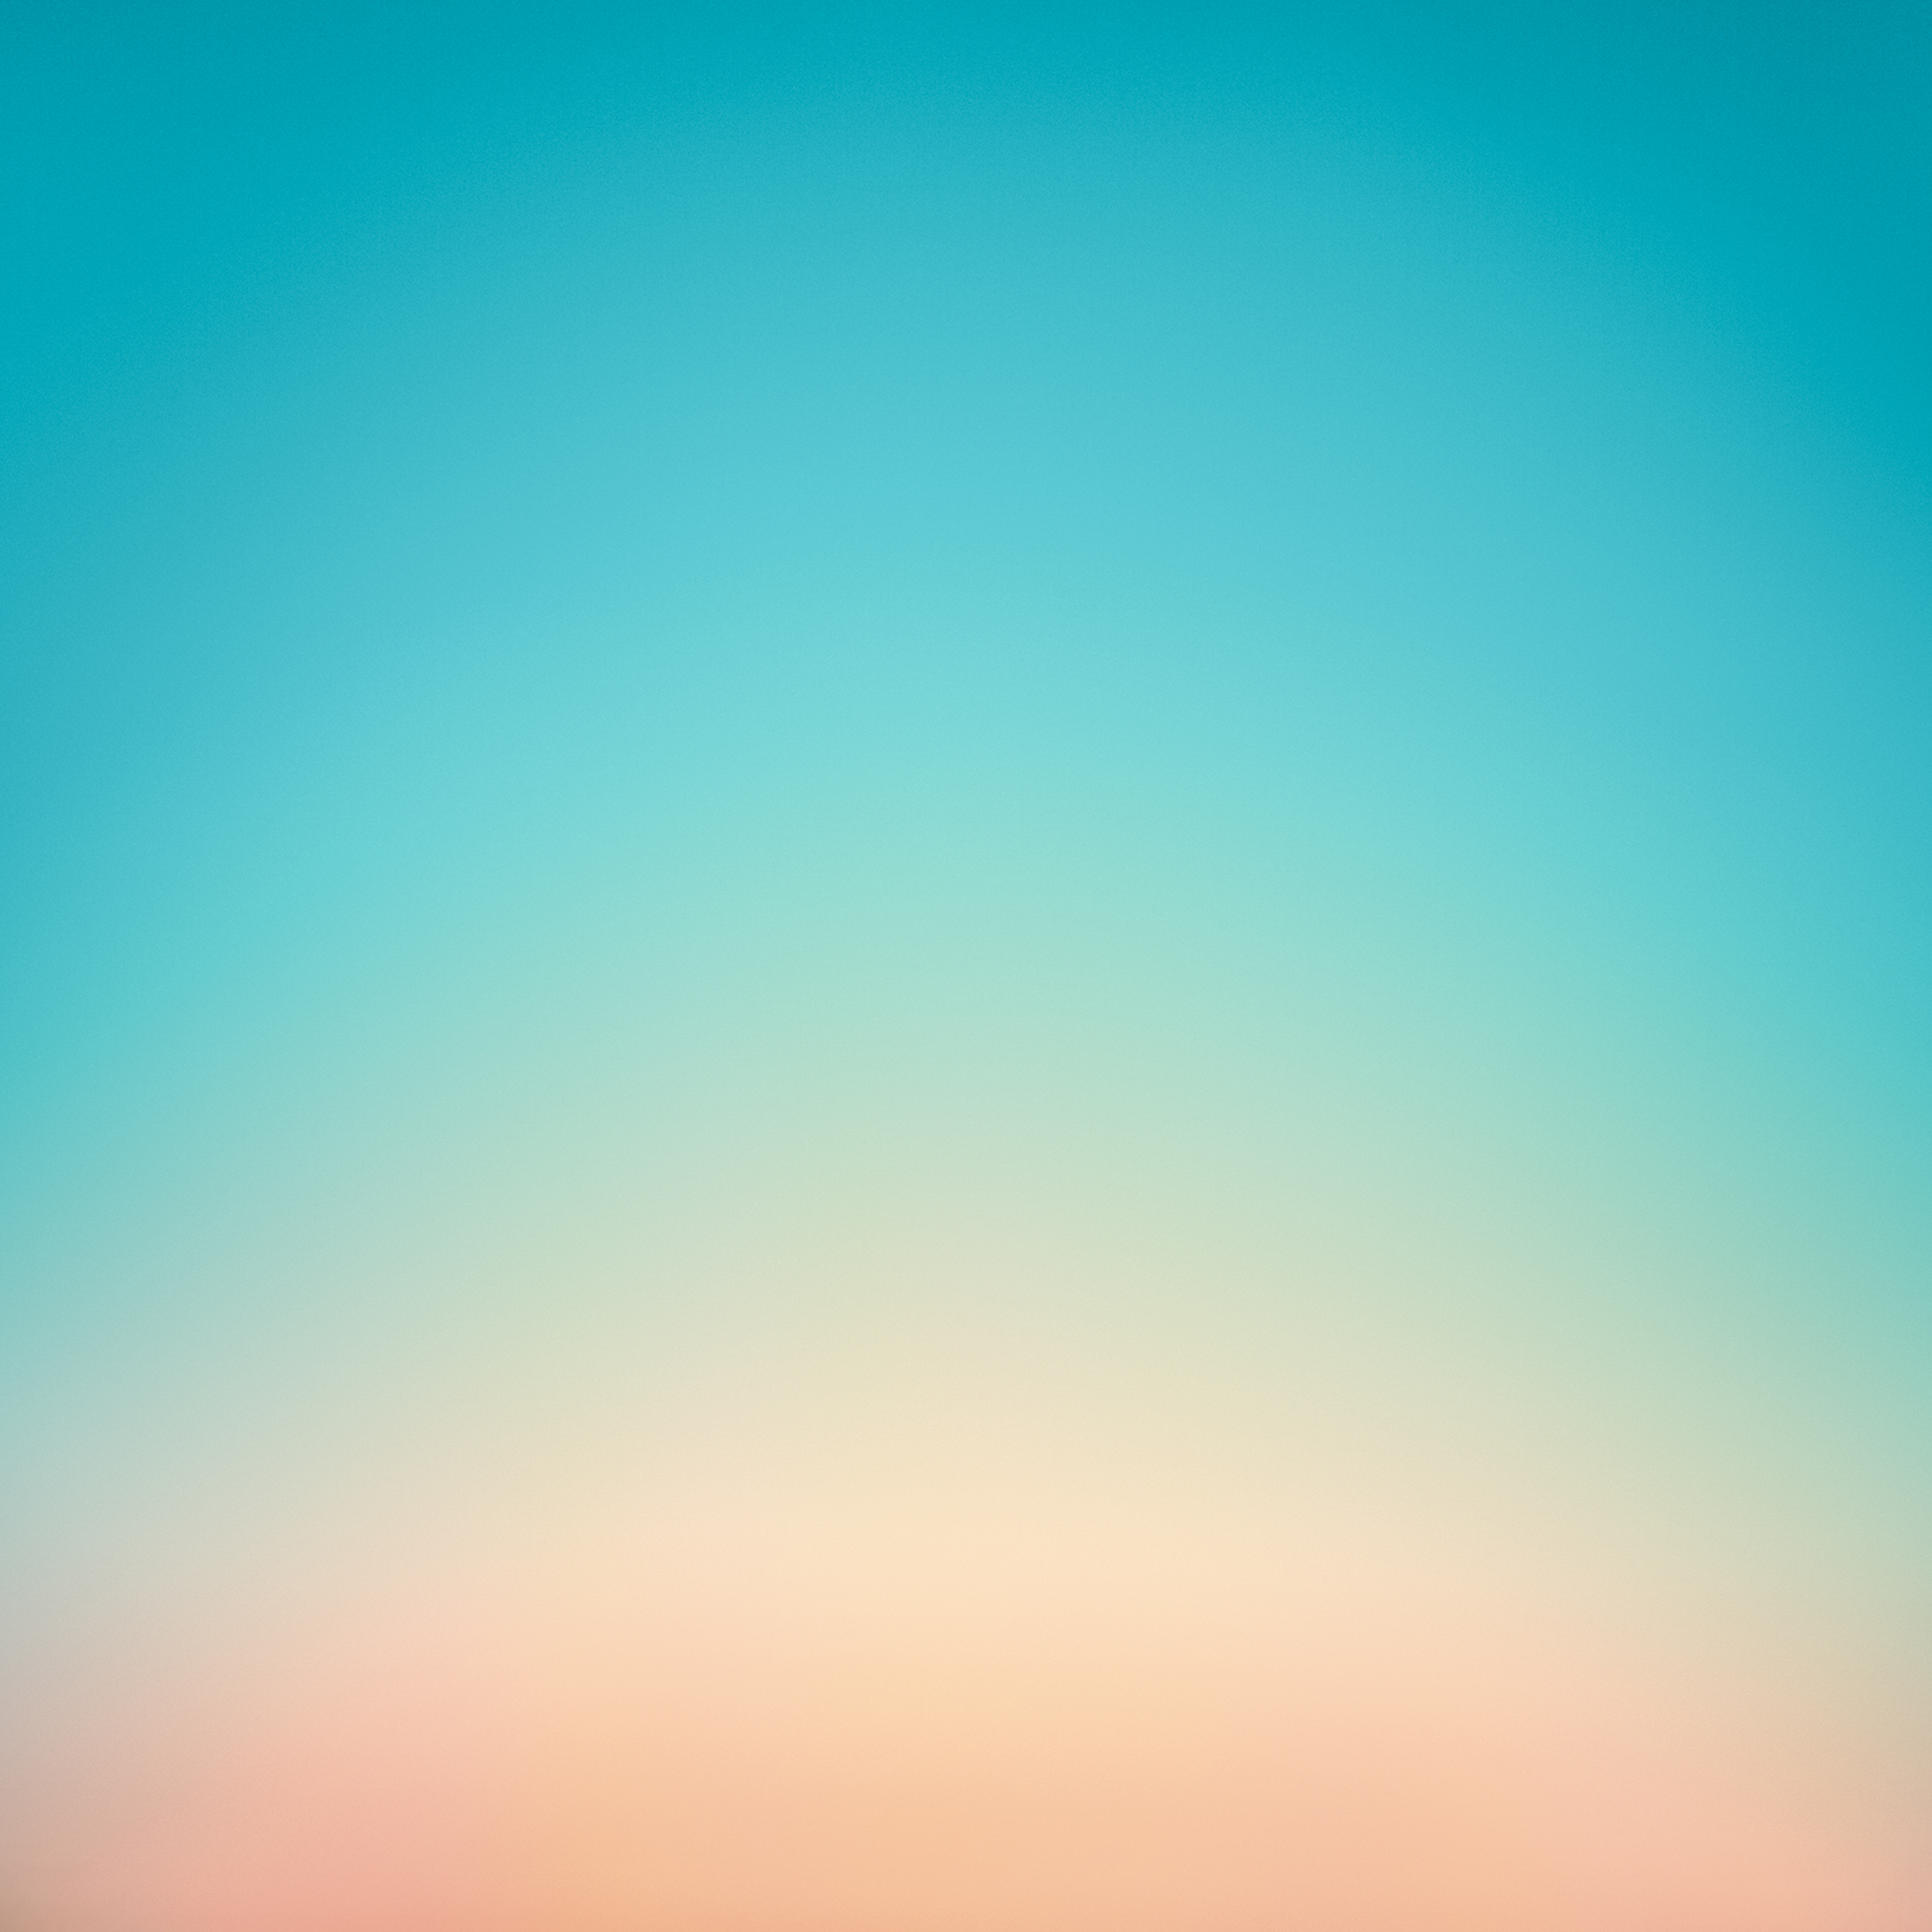 Ios7 ipad wallpapers 21